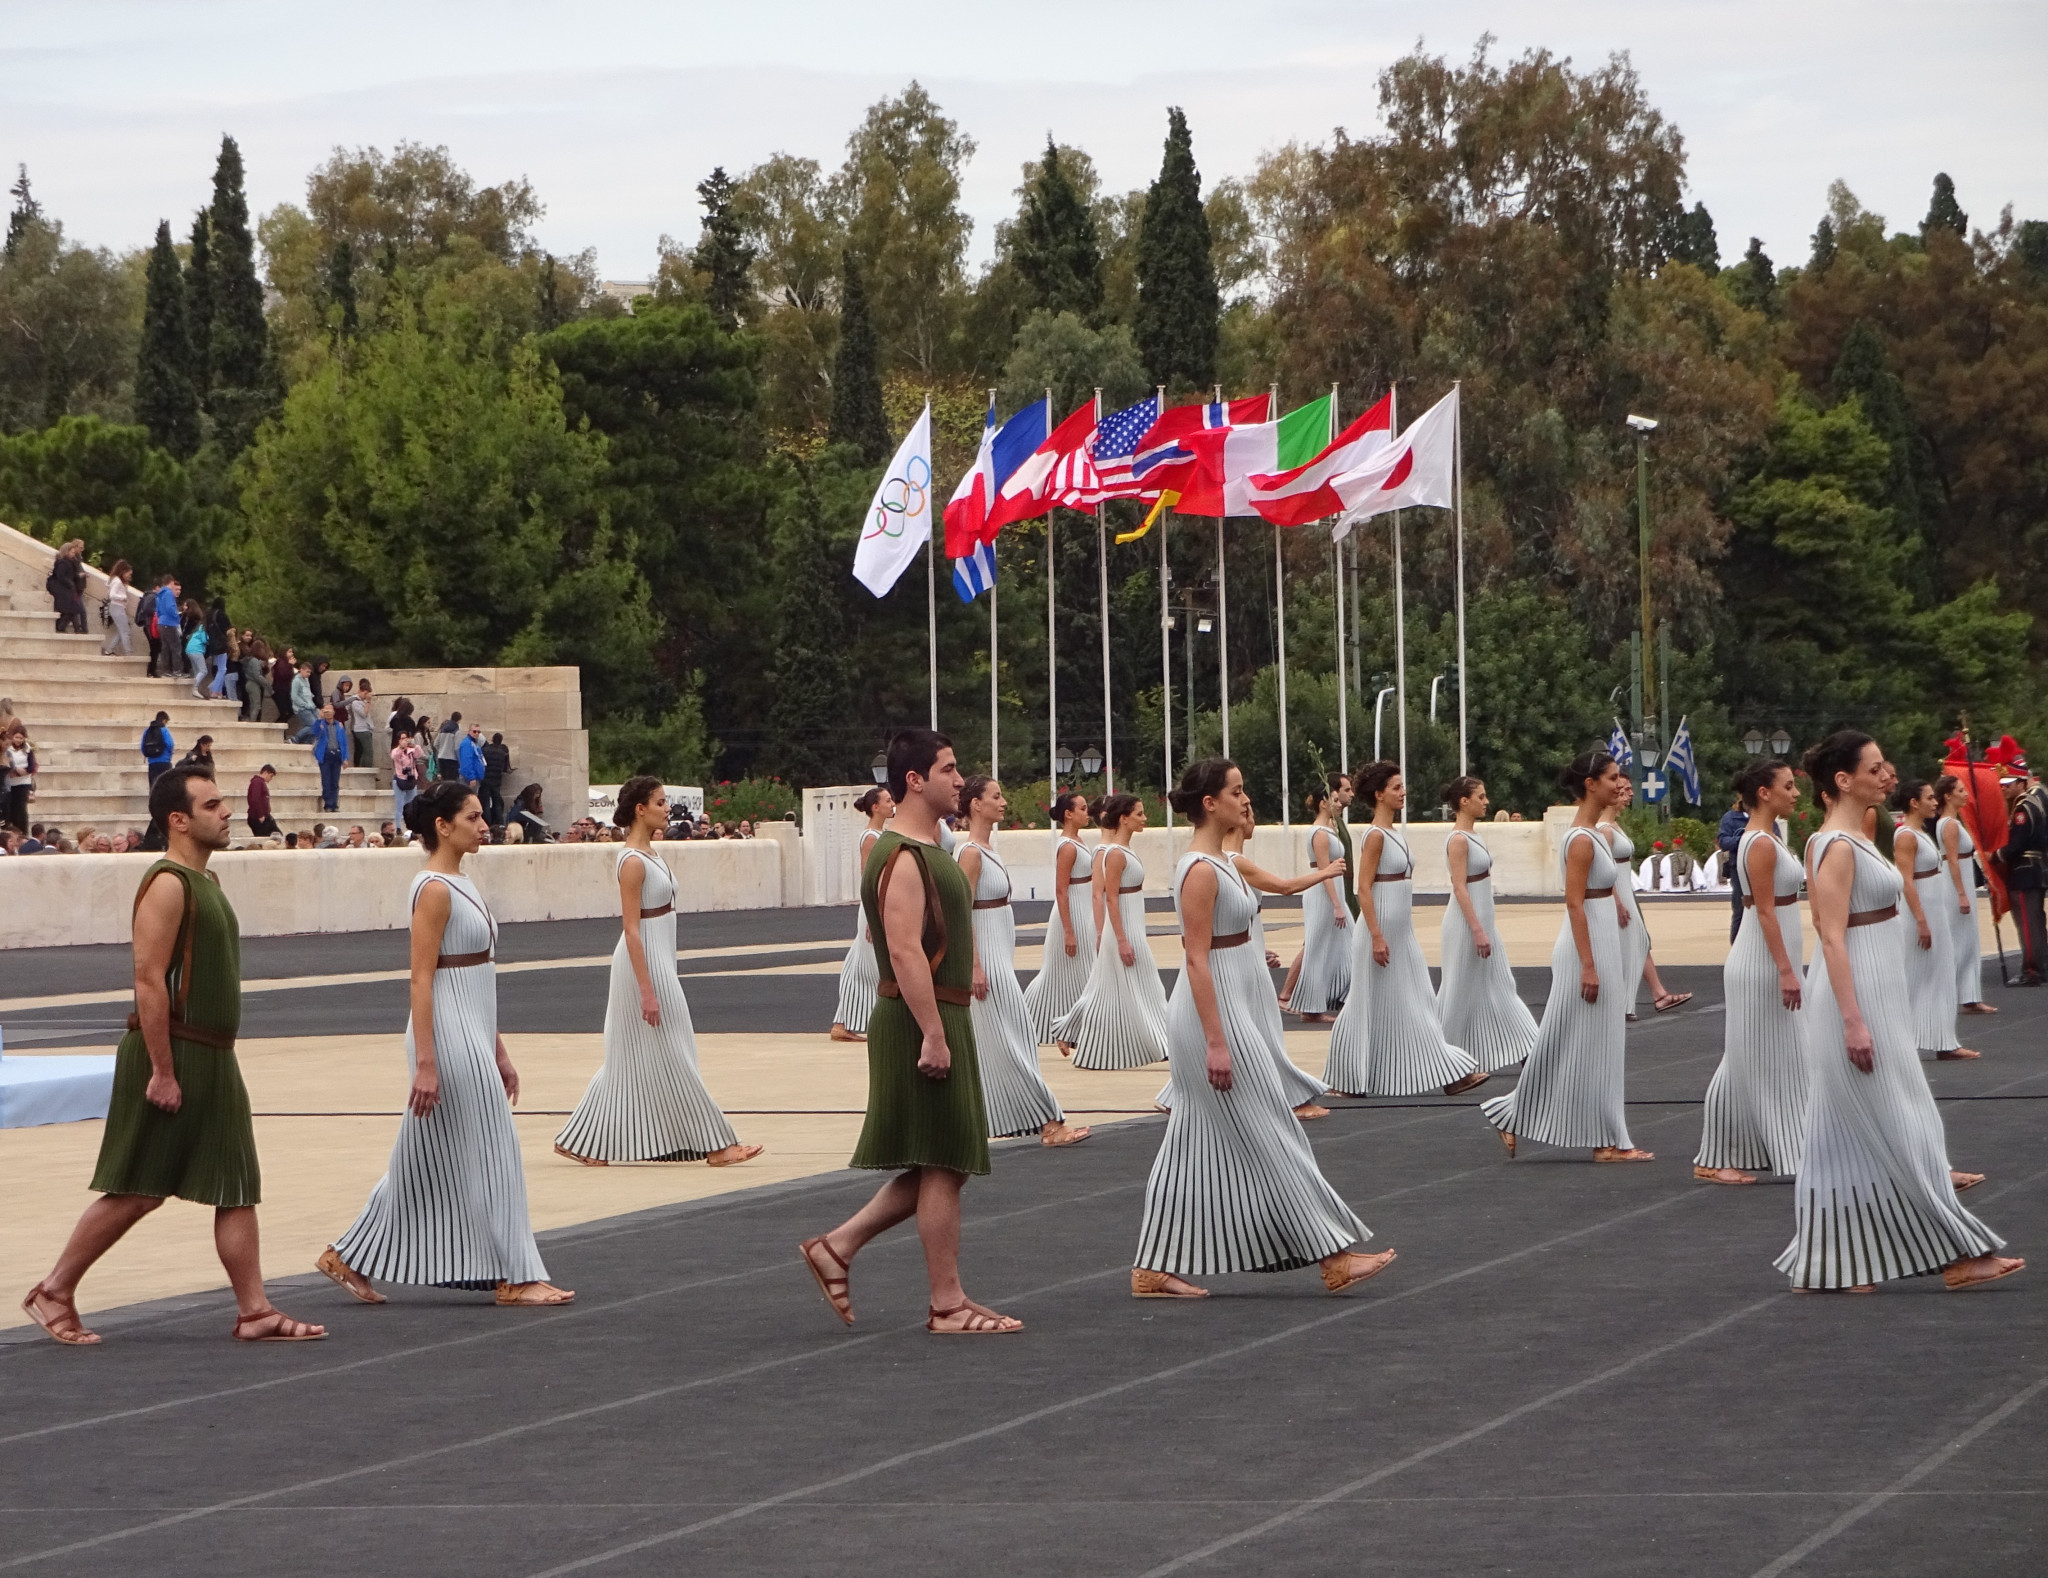 The Panathinaiko celebration is traditionally a focal point for Olympic visitors ©Philip Barker